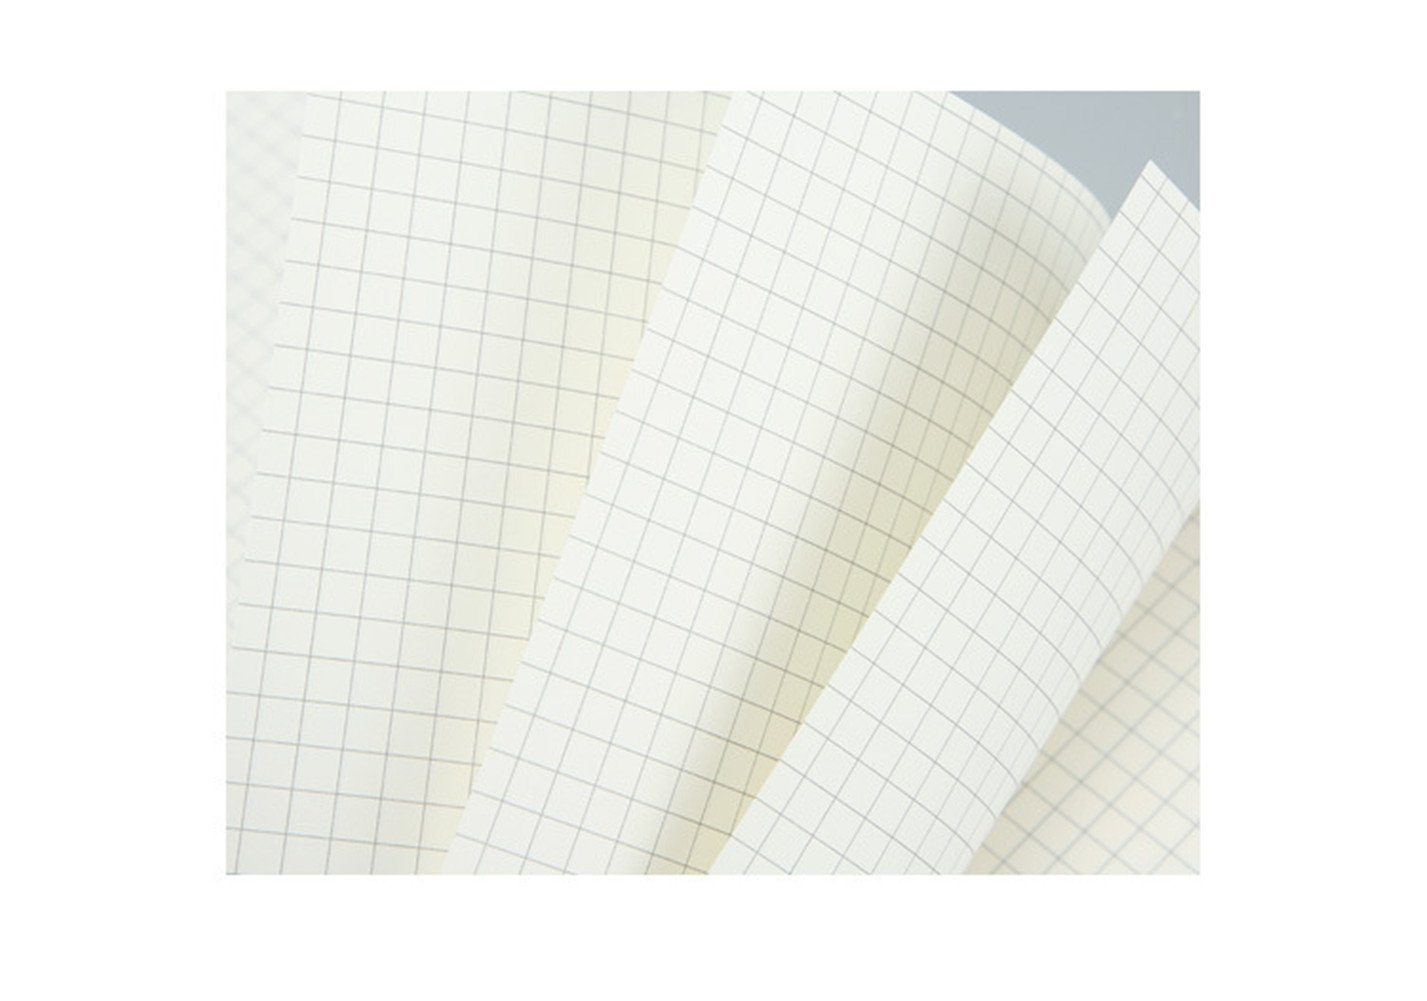 3pcs graph paper Set of 3 7.5x5 inch Design Chart Notebook |Travel Notebook Replacement Core Graph Paper Notebook 5mm Square Thick Paper